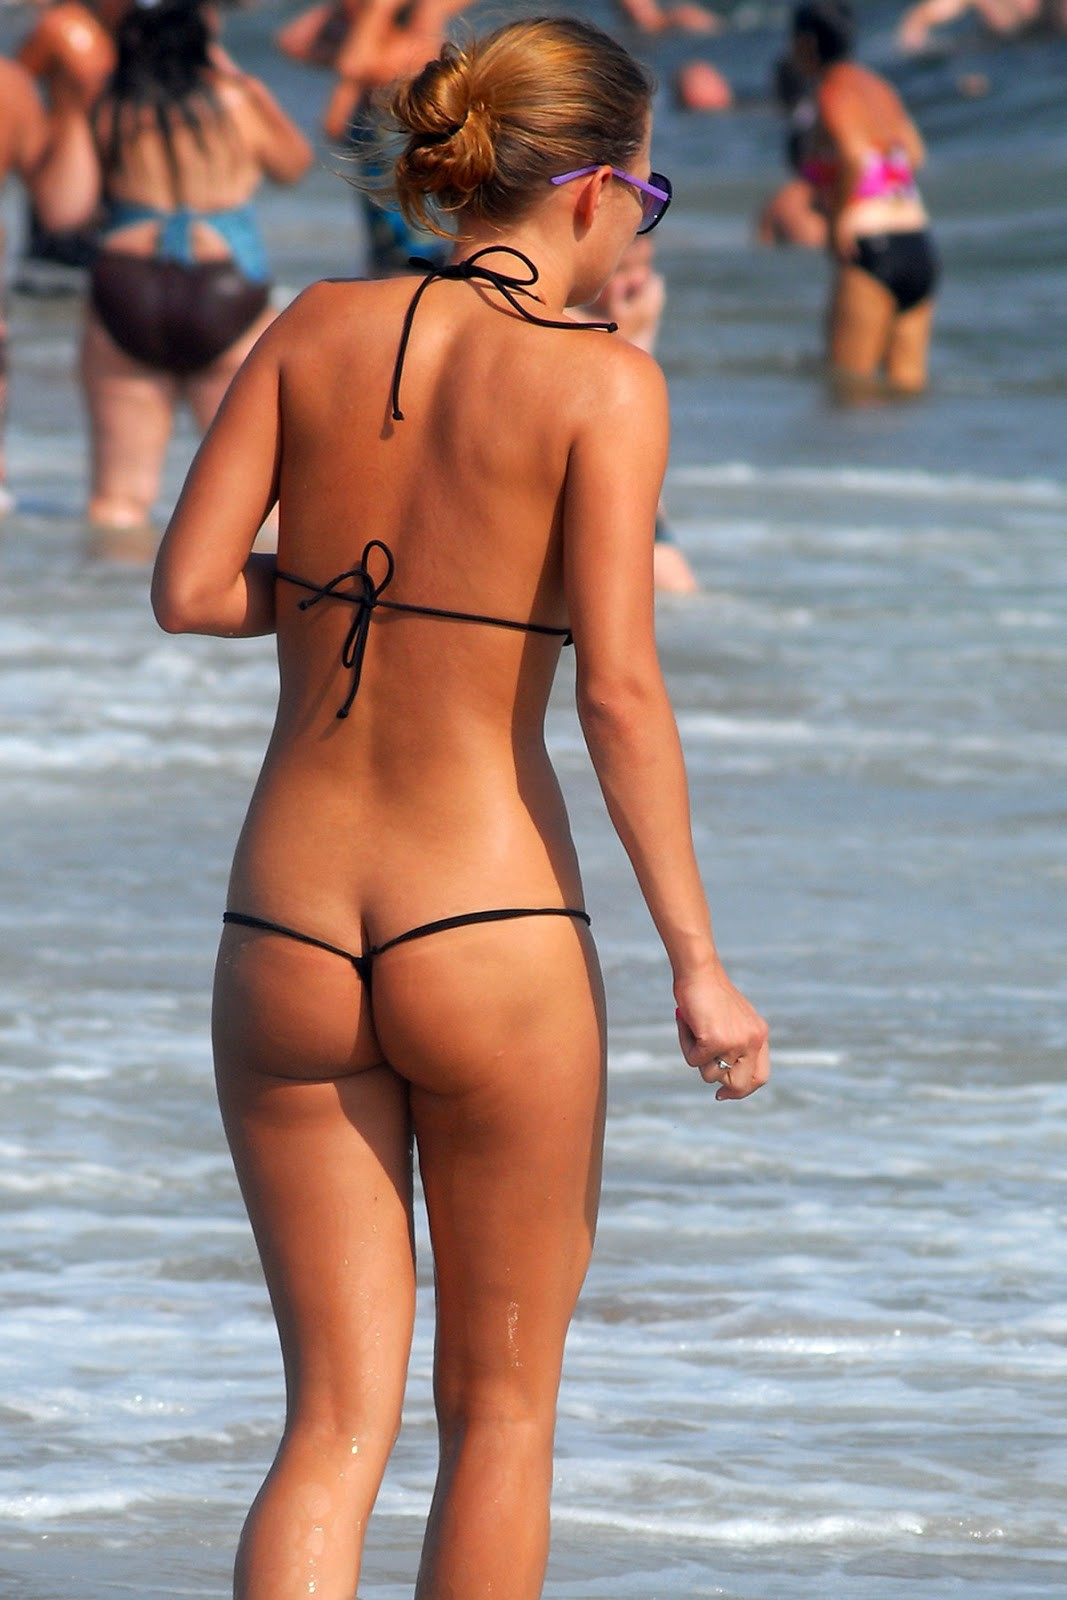 g string panty girl in goa beach hd pictures